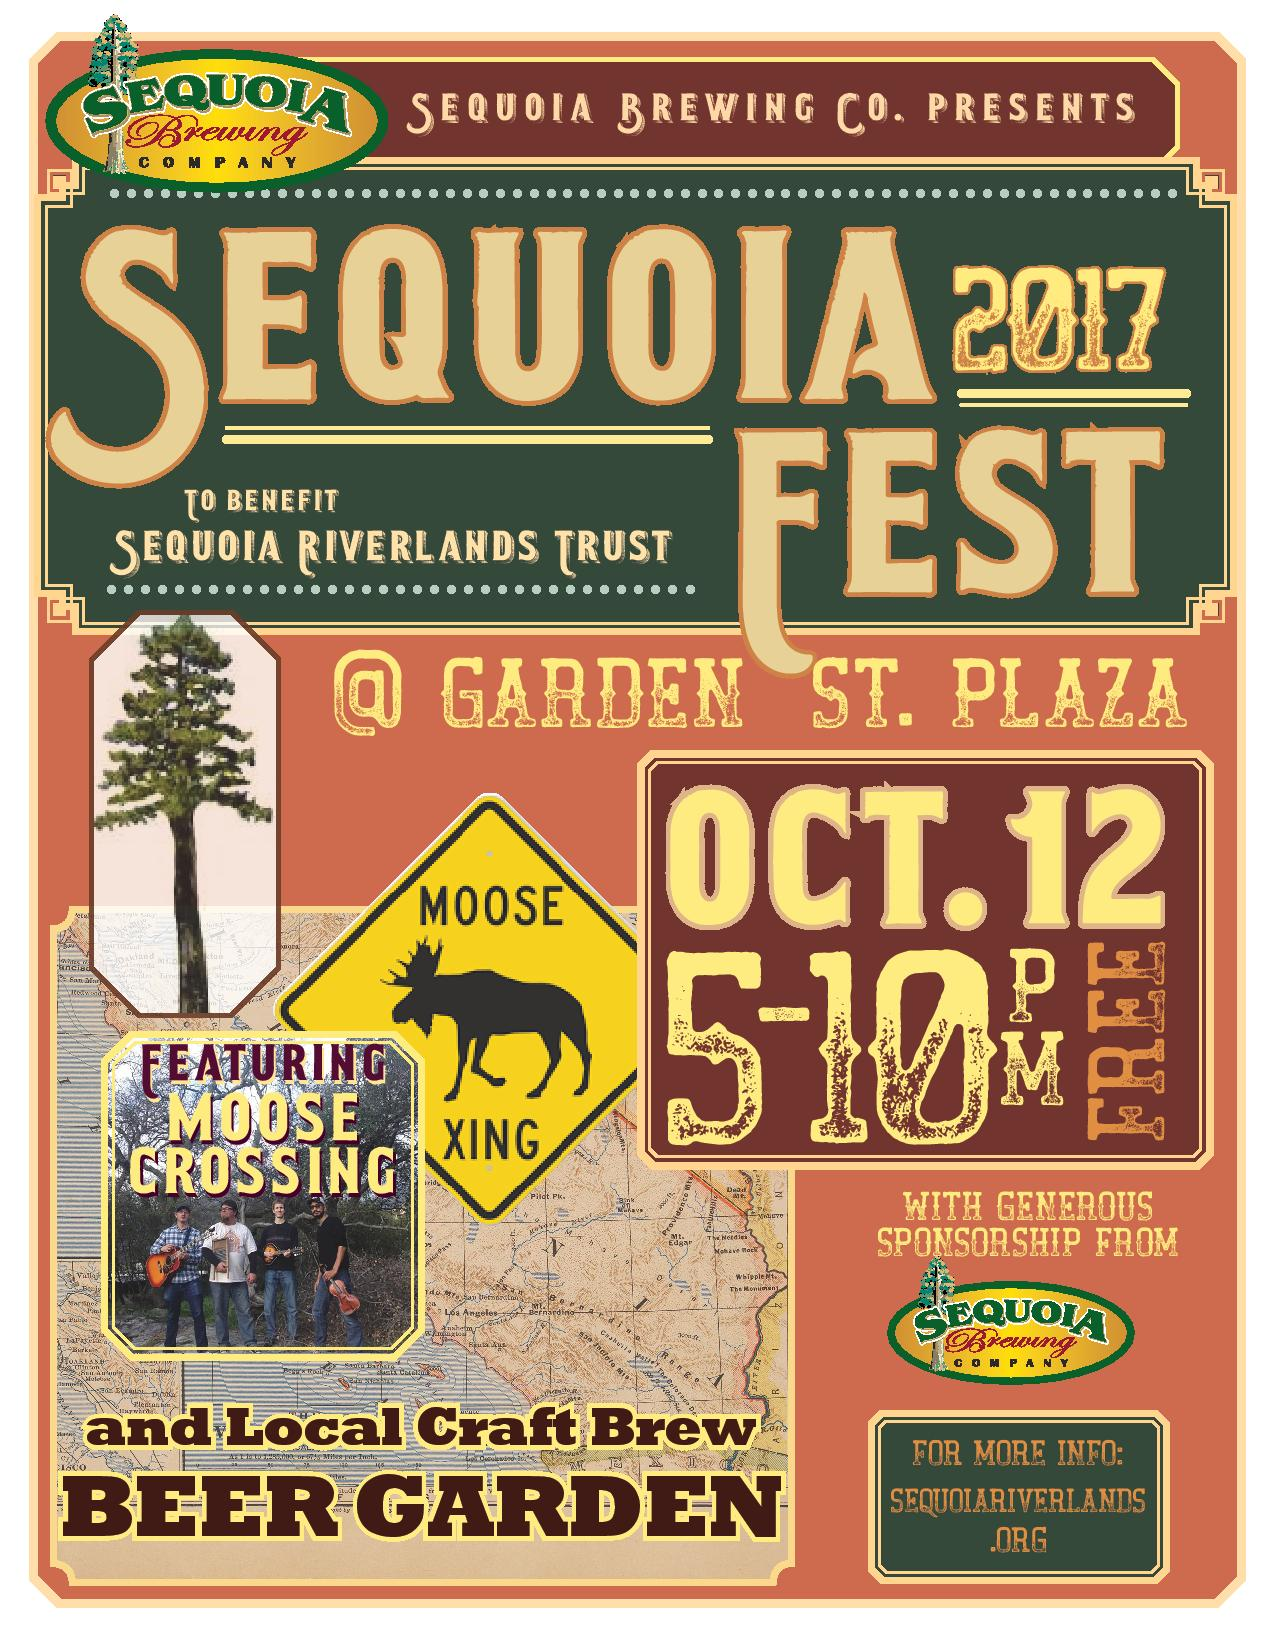 SequoiaFest 2 happening October 12